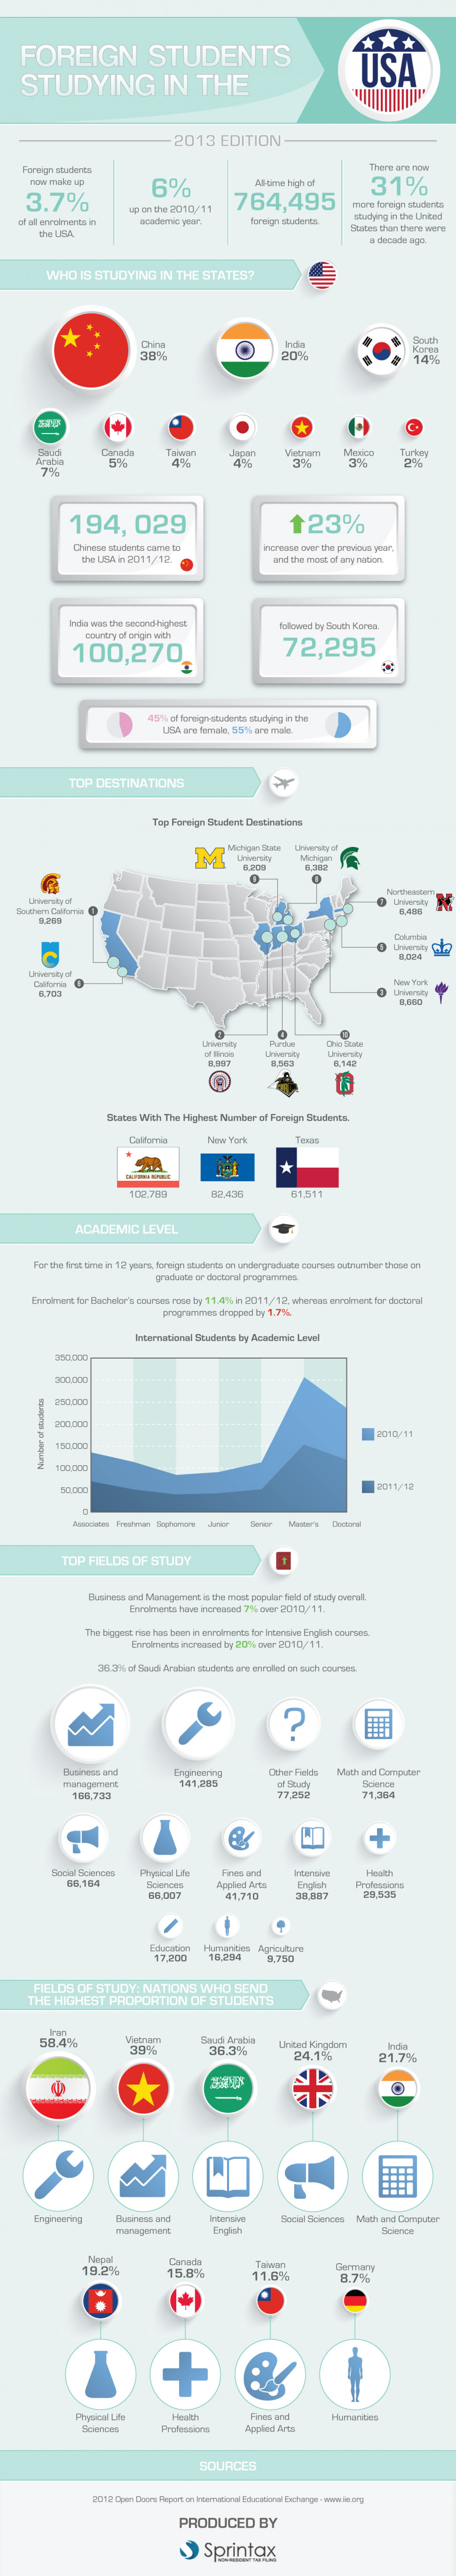 Foreign Students Studying in the USA Infographic